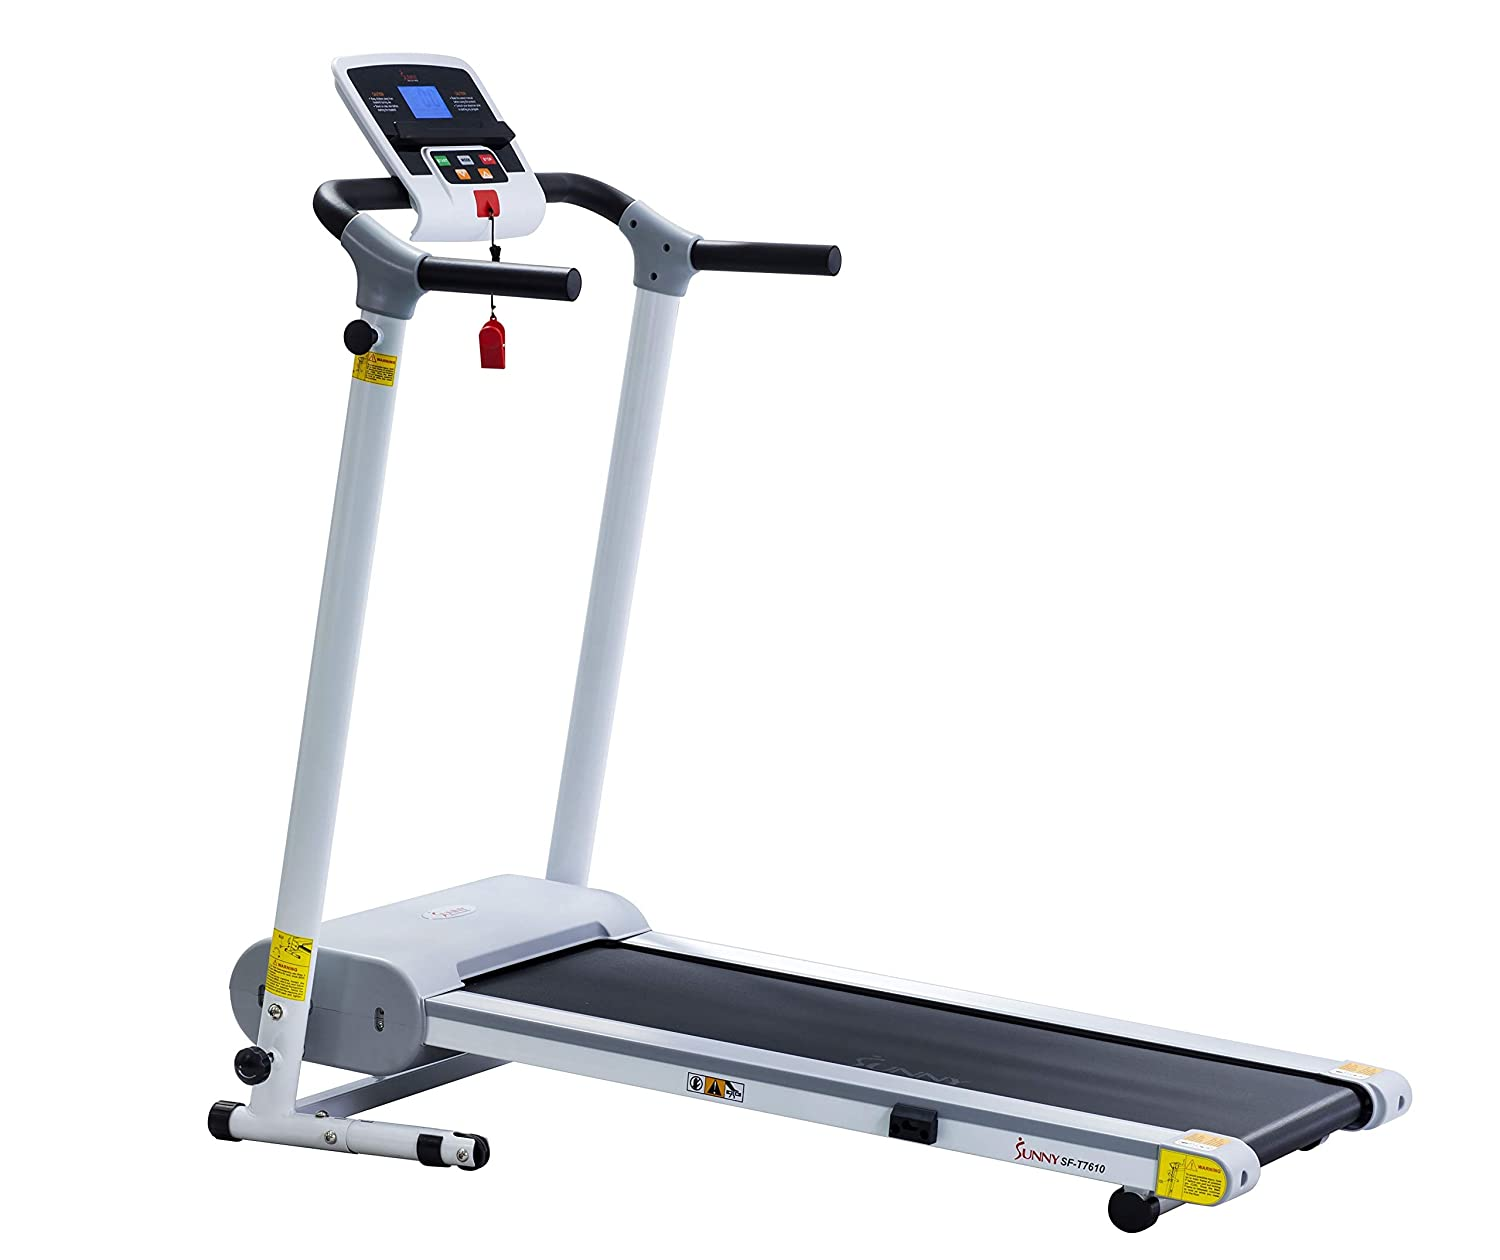 Sunny Health Fitness Electric Walking Folding Treadmill with LCD Display and Tablet Holder, 220 LB Max Weight